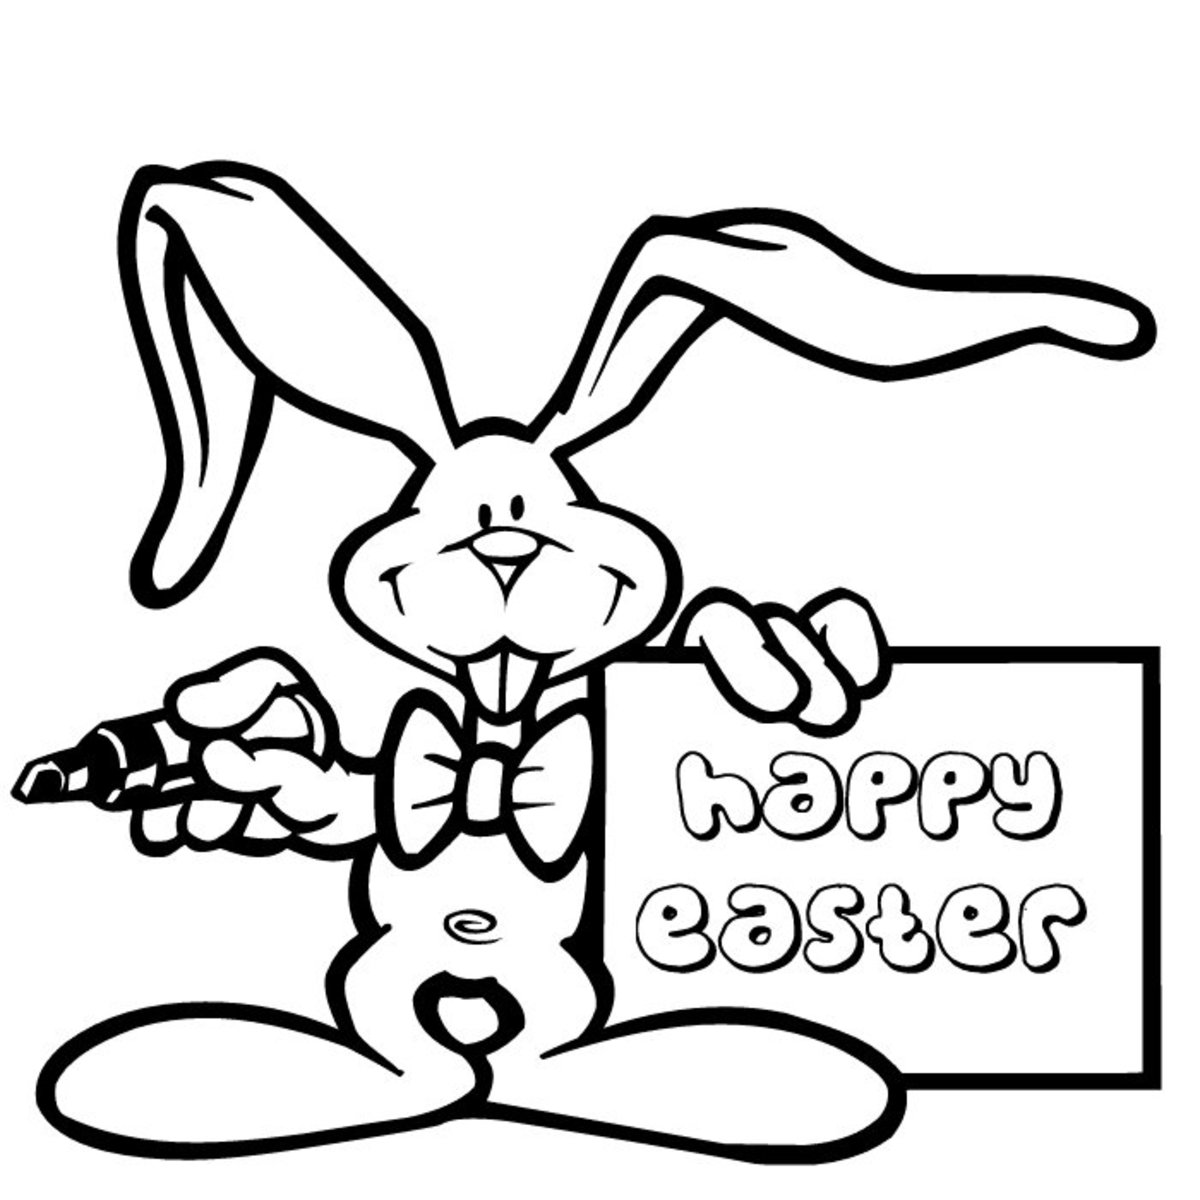 happy easter coloring pages for kids. Easter bunny coloring in